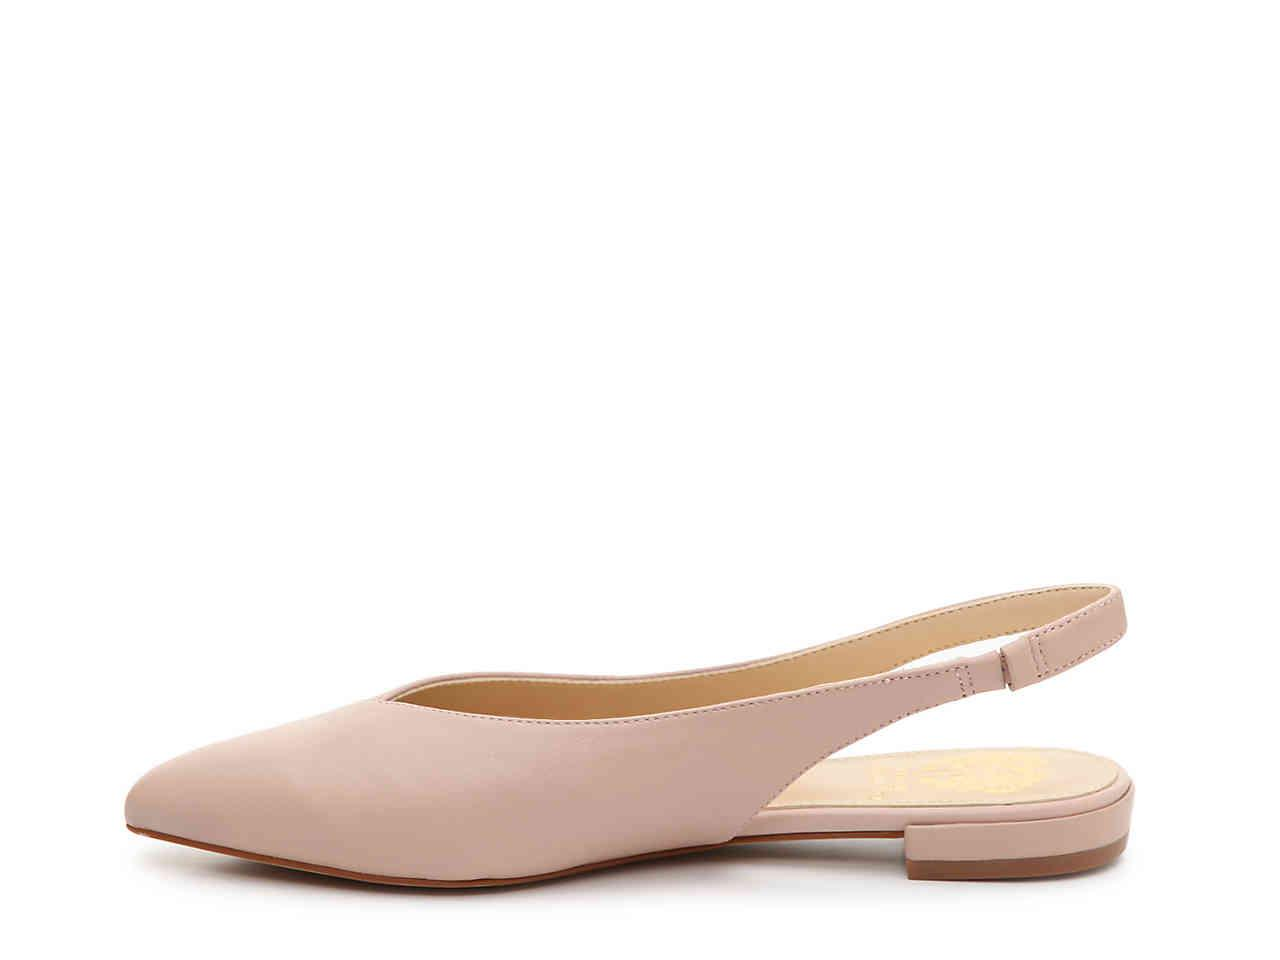 9b15e35d6c1 Lyst - Vince Camuto Jasenia Flat in Pink